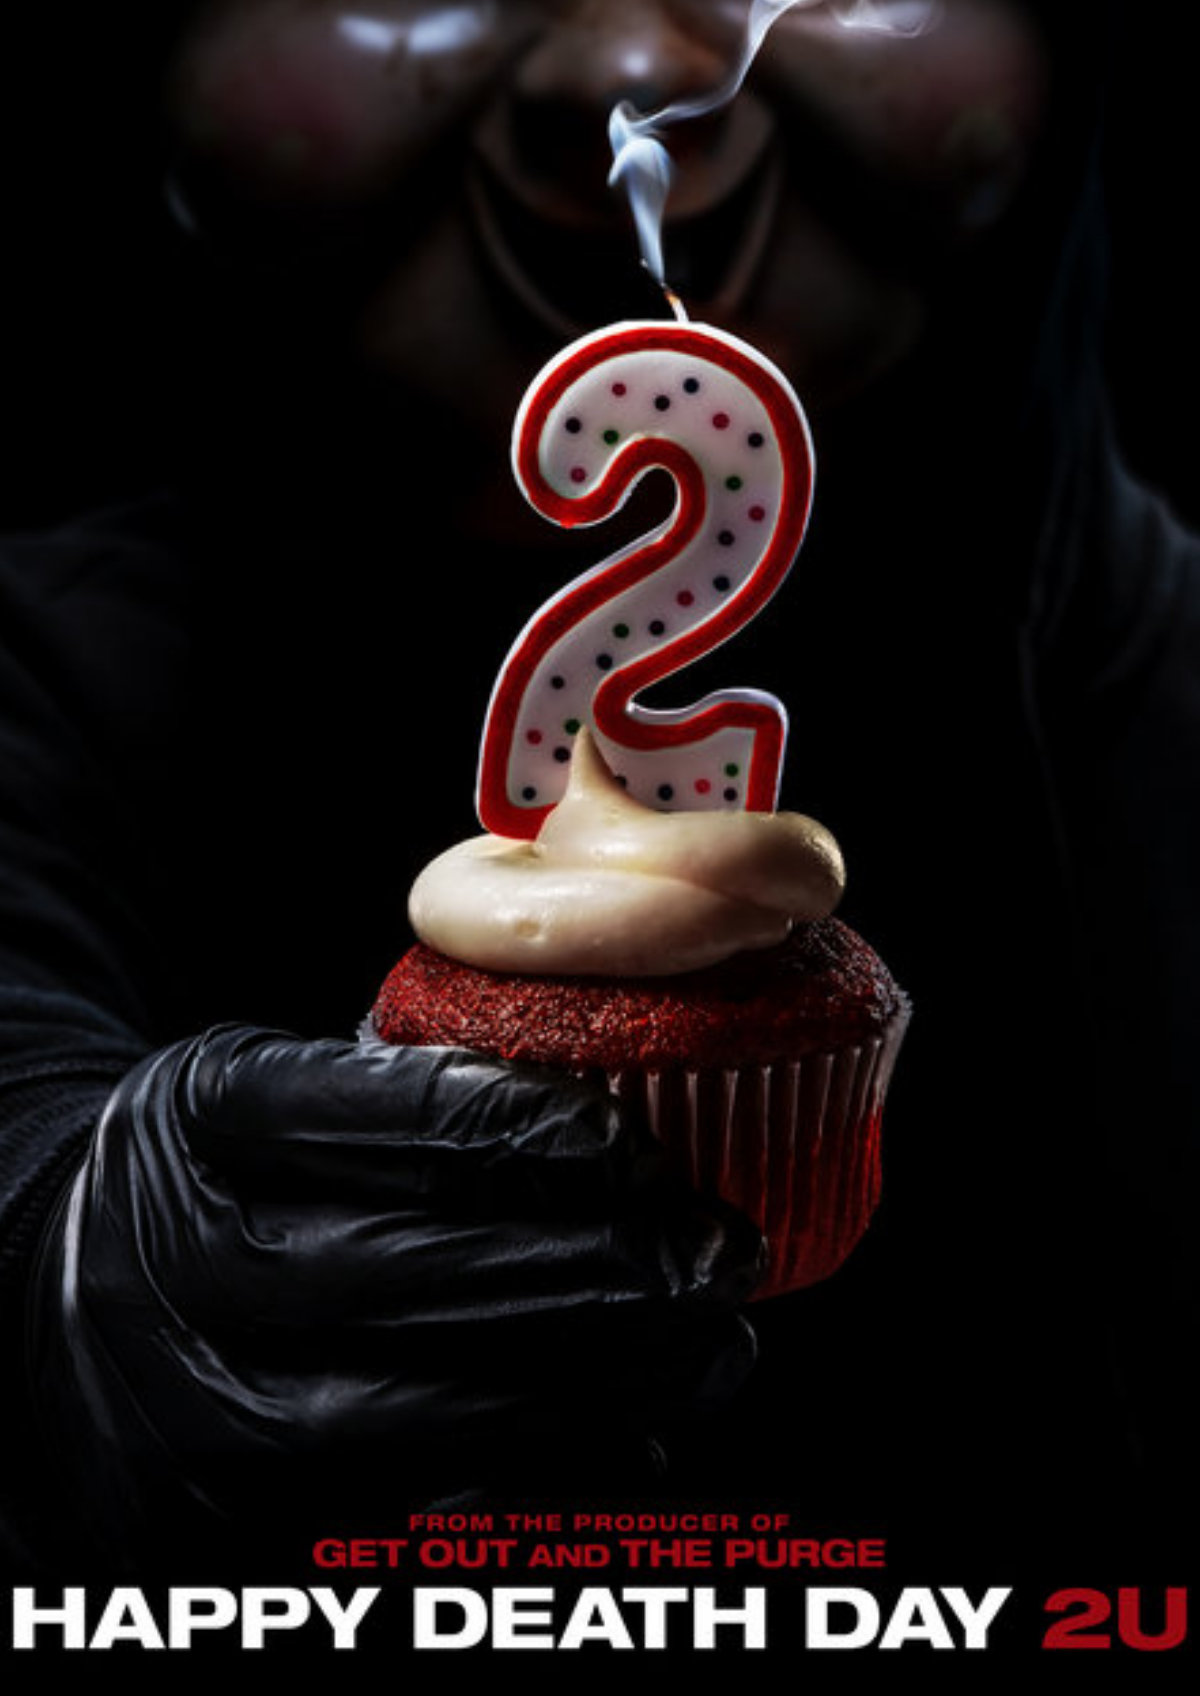 'Happy Death Day 2U' movie poster